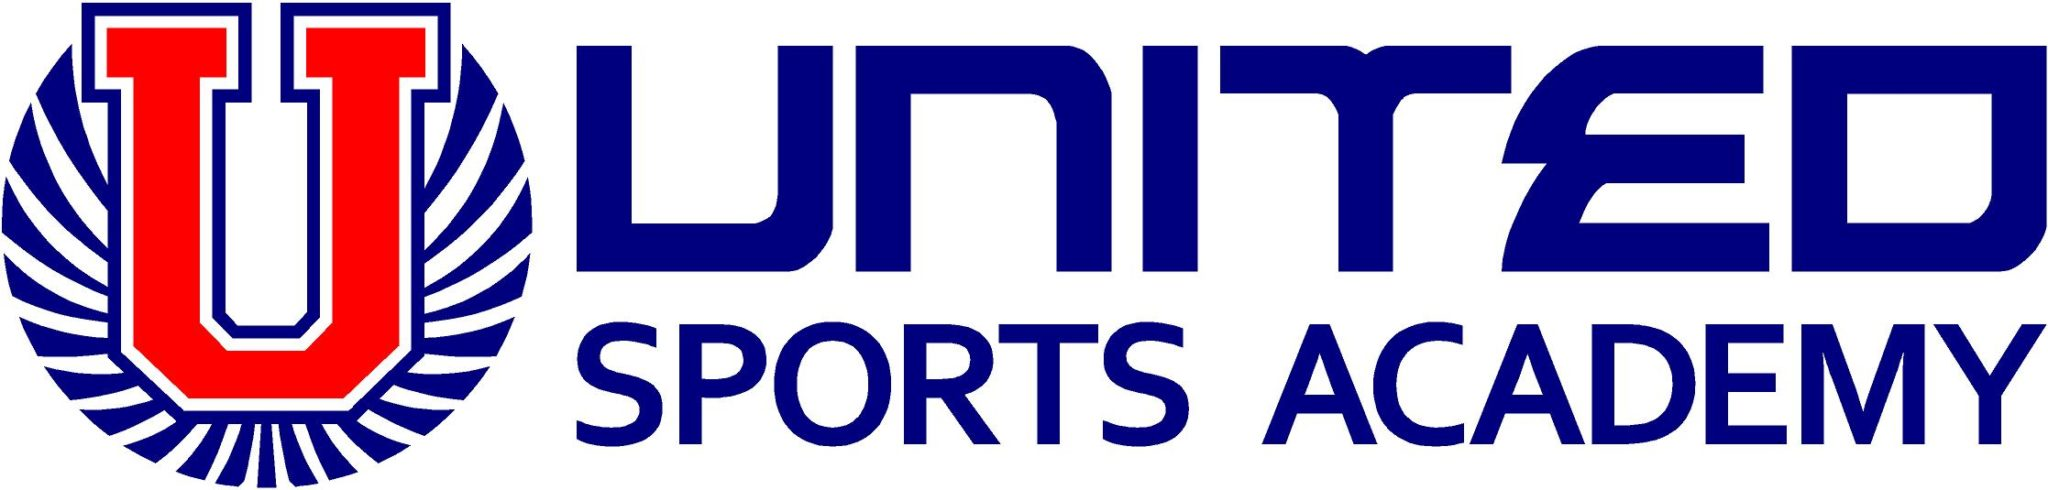 united sports academy logo horizontal